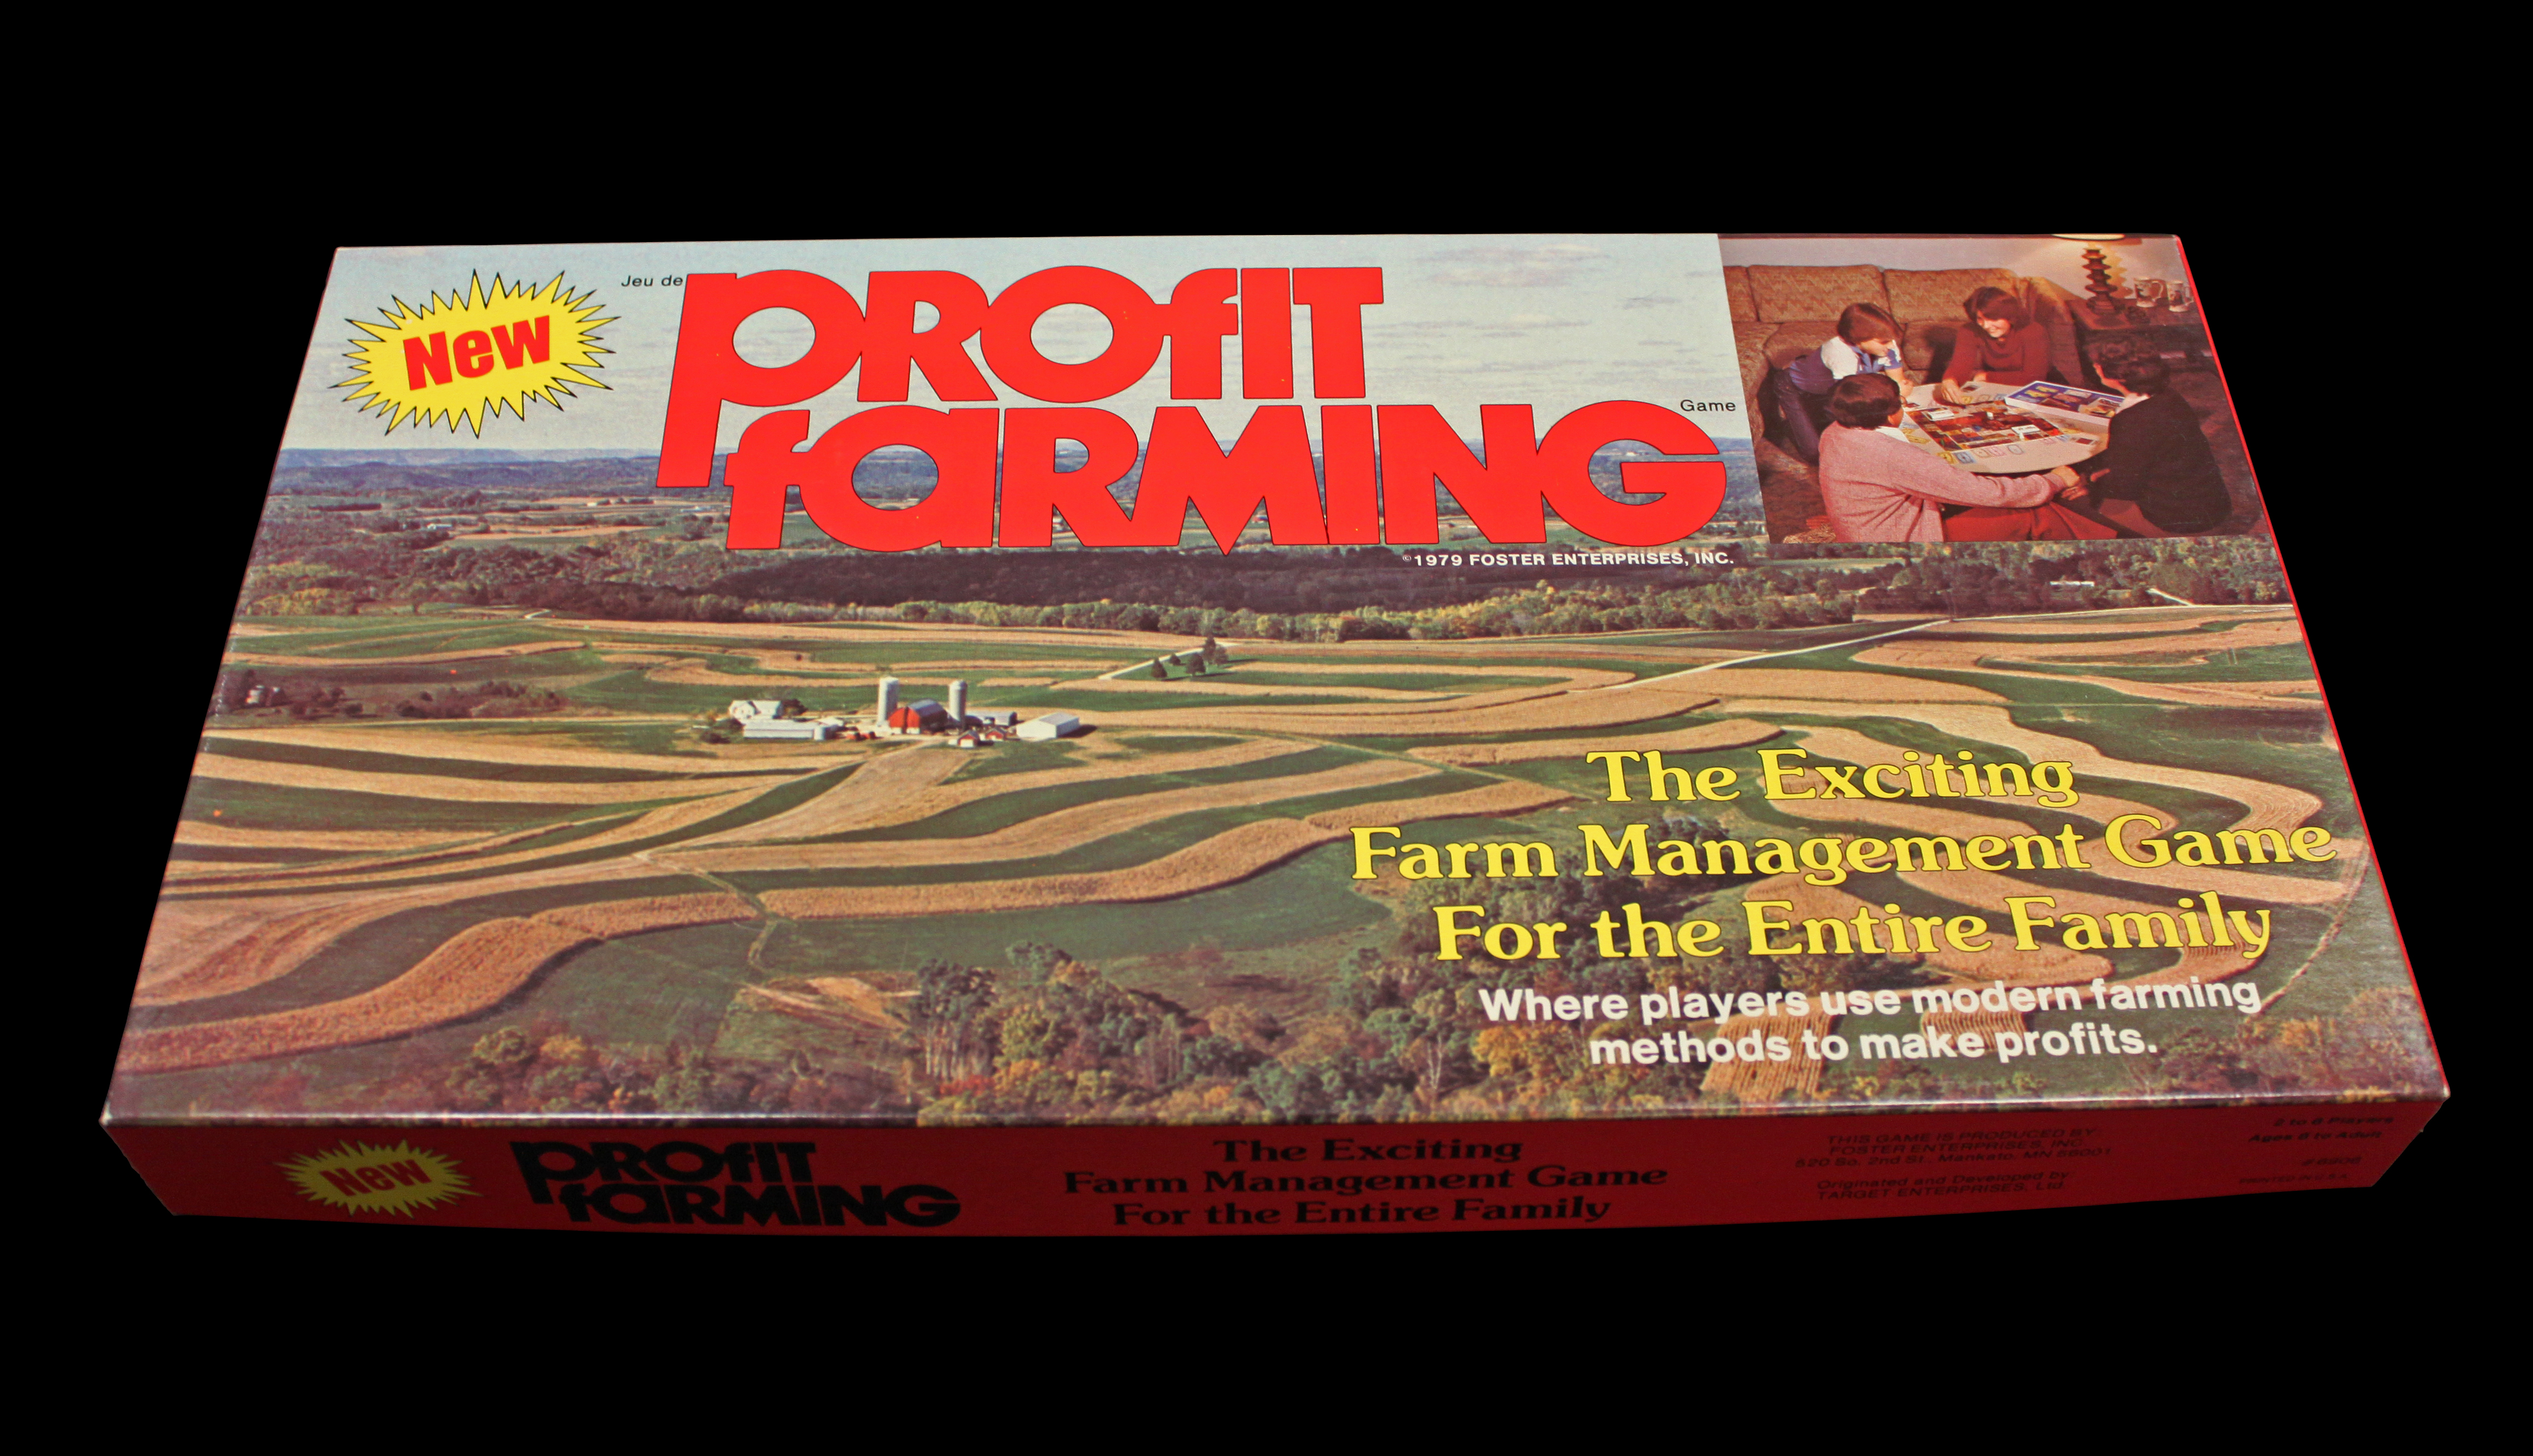 Photograph of the Profit Farming board game box.